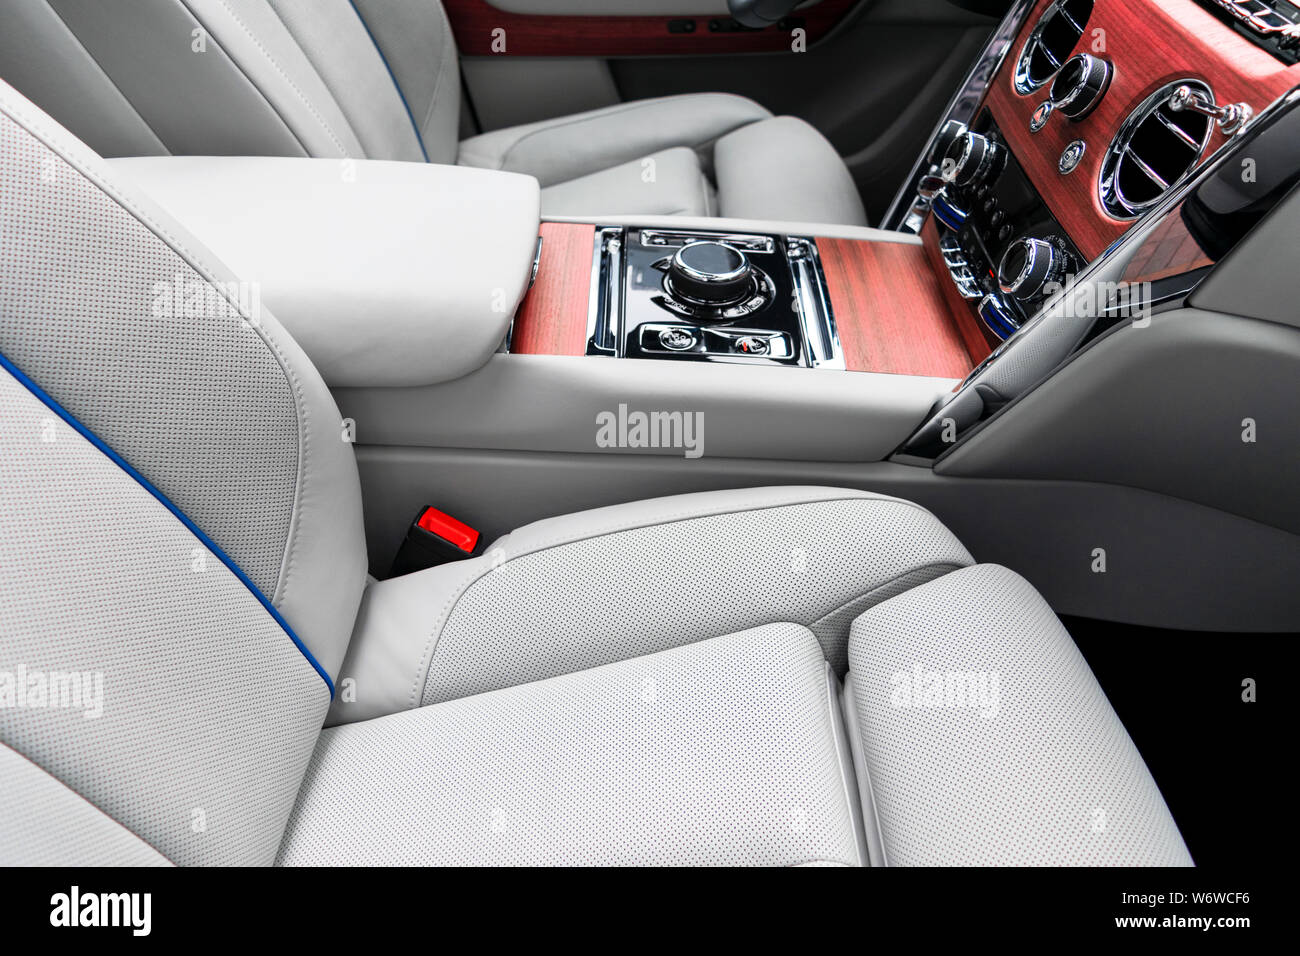 Modern luxury car white leather interior with natural wood panel. Part of leather car seat details with stitching. Interior of prestige modern car. Wh Stock Photo